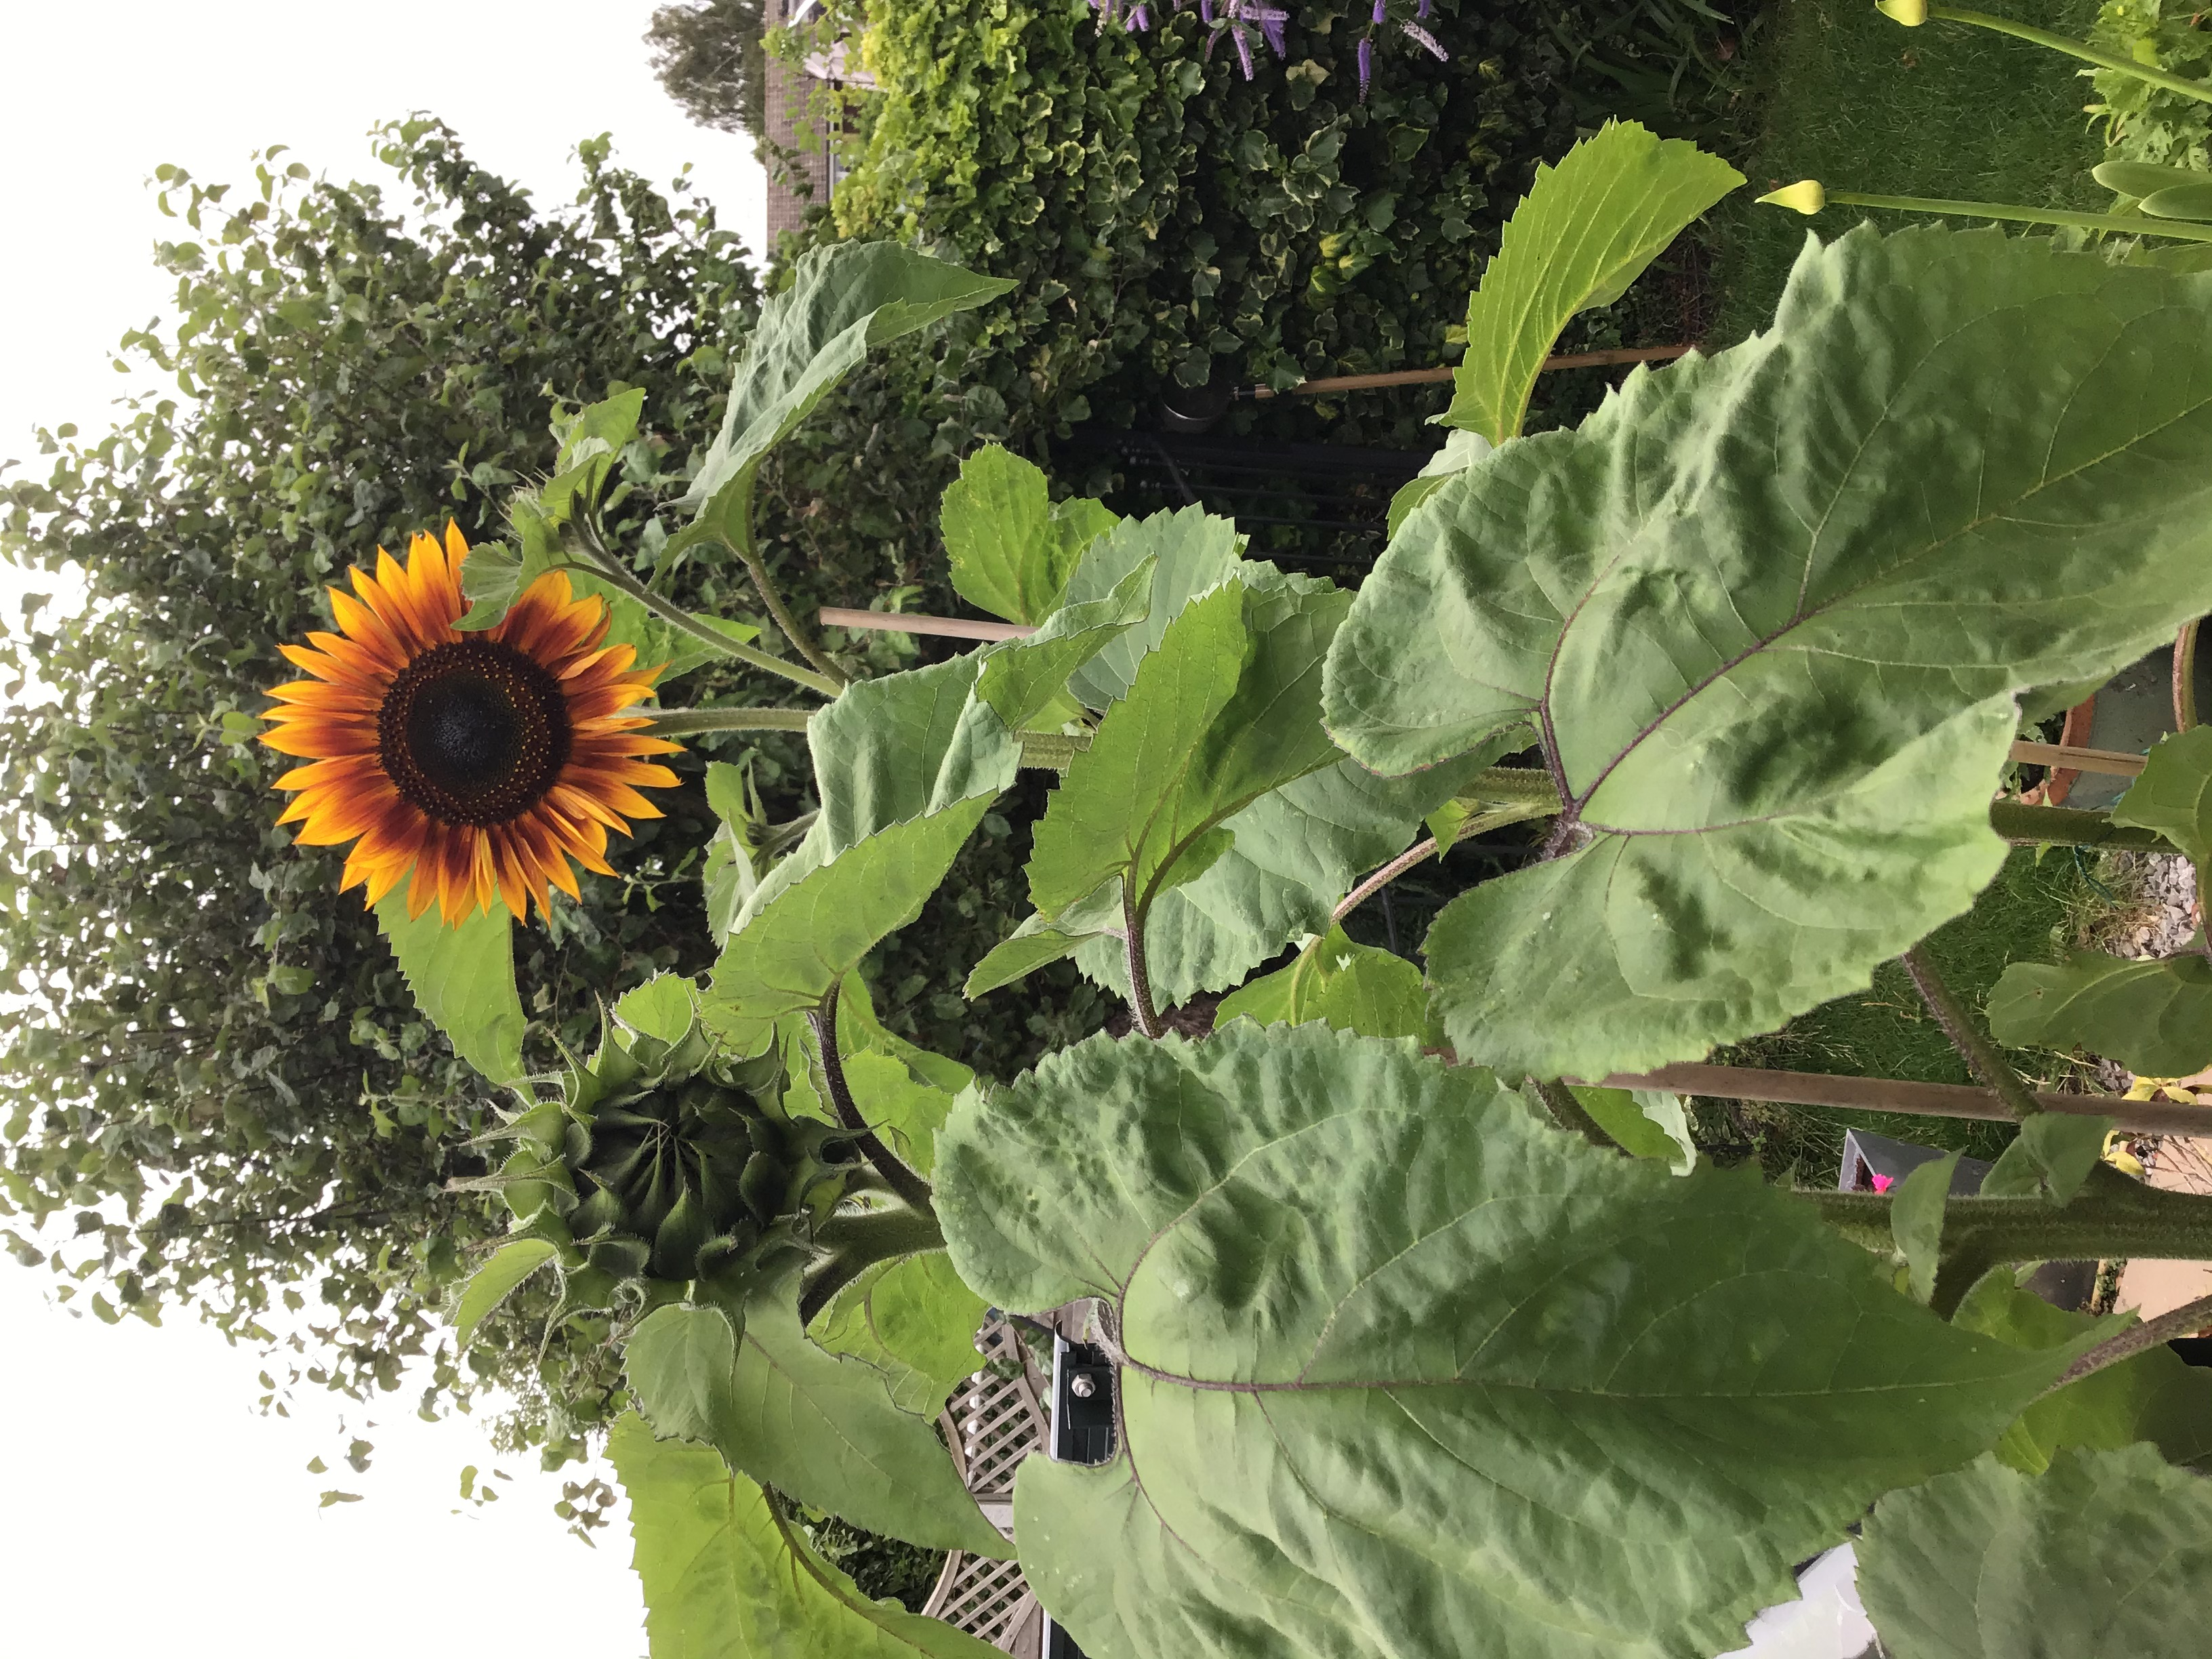 1st Prize Sunflowers from my garden/allotment